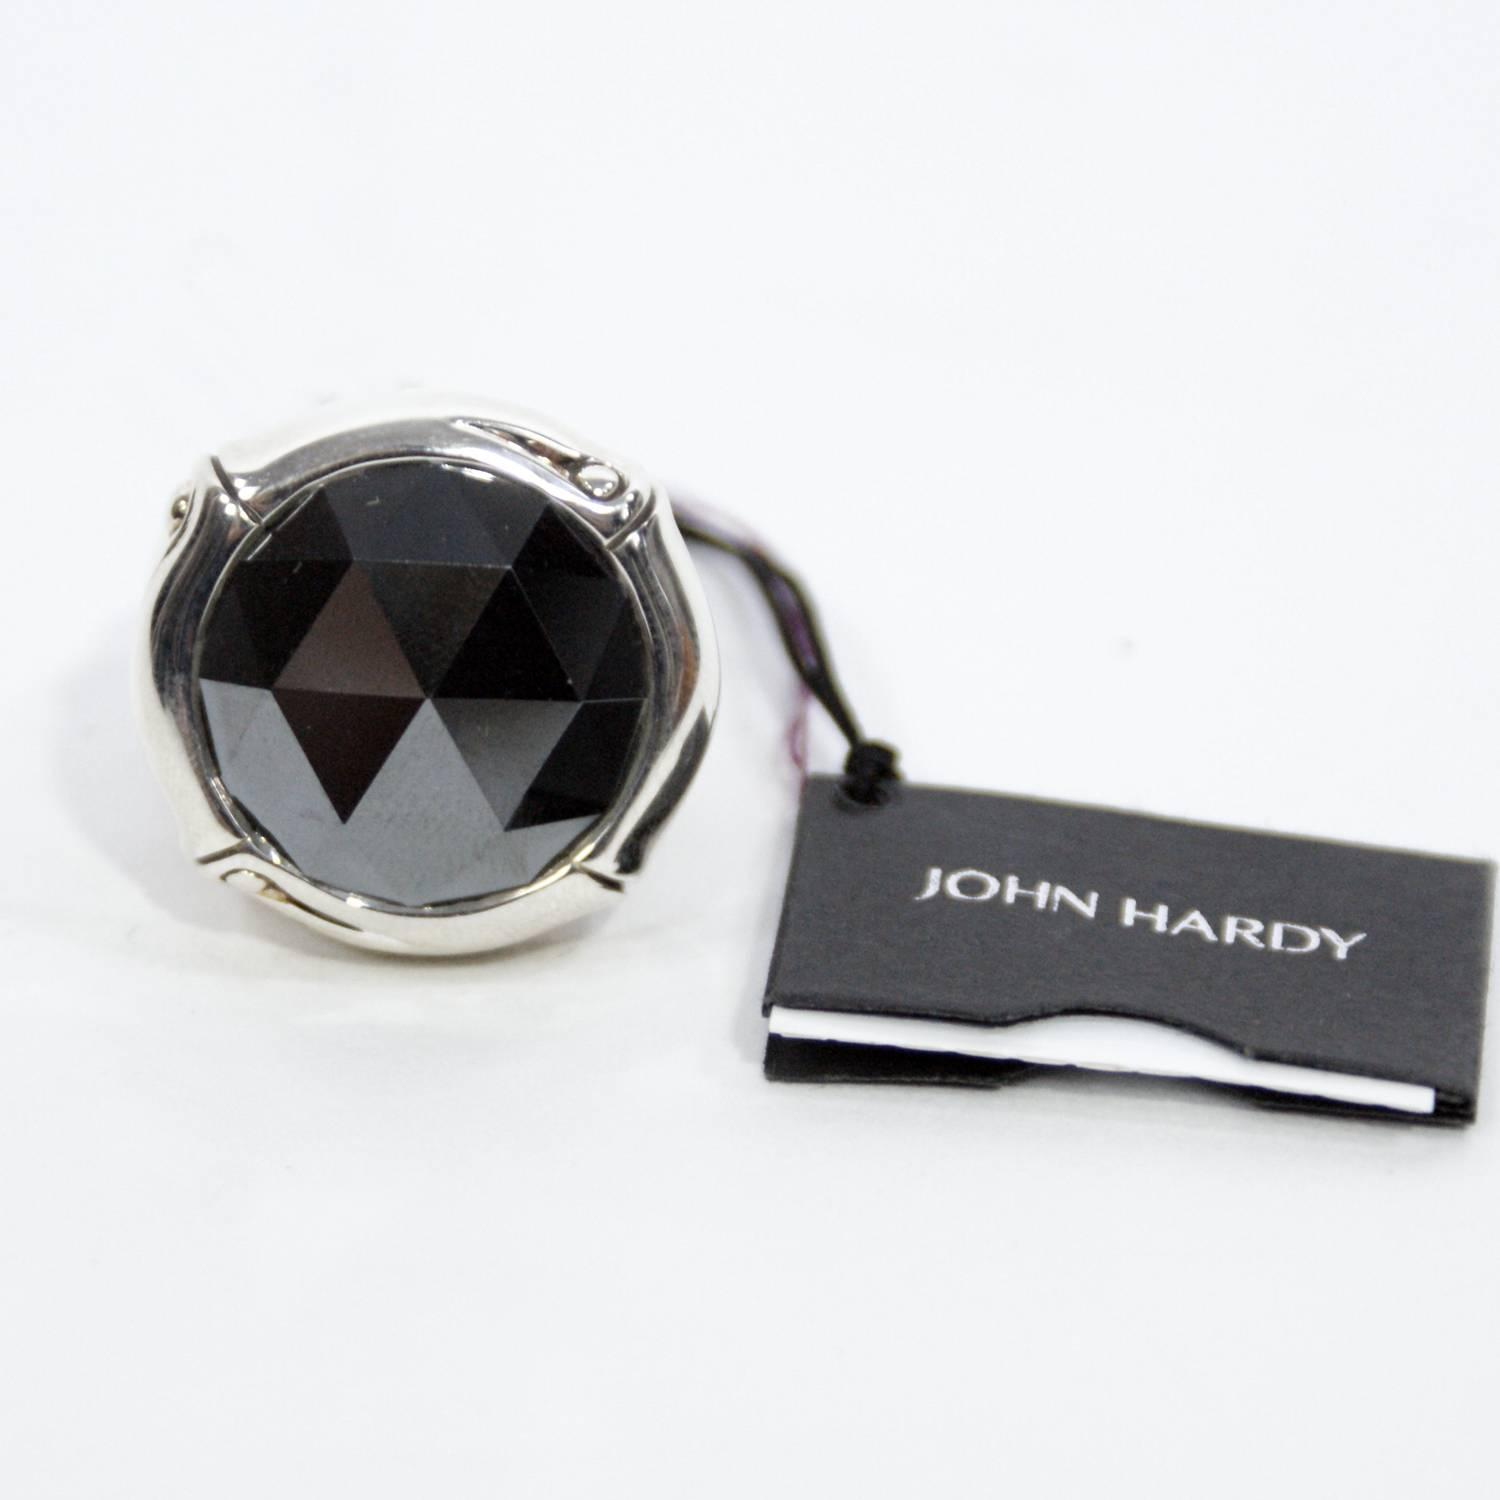 Free shipping on John Hardy jewelry at milionerweb.tk Shop for rings, bracelets, earrings and necklaces. Totally free shipping and returns.